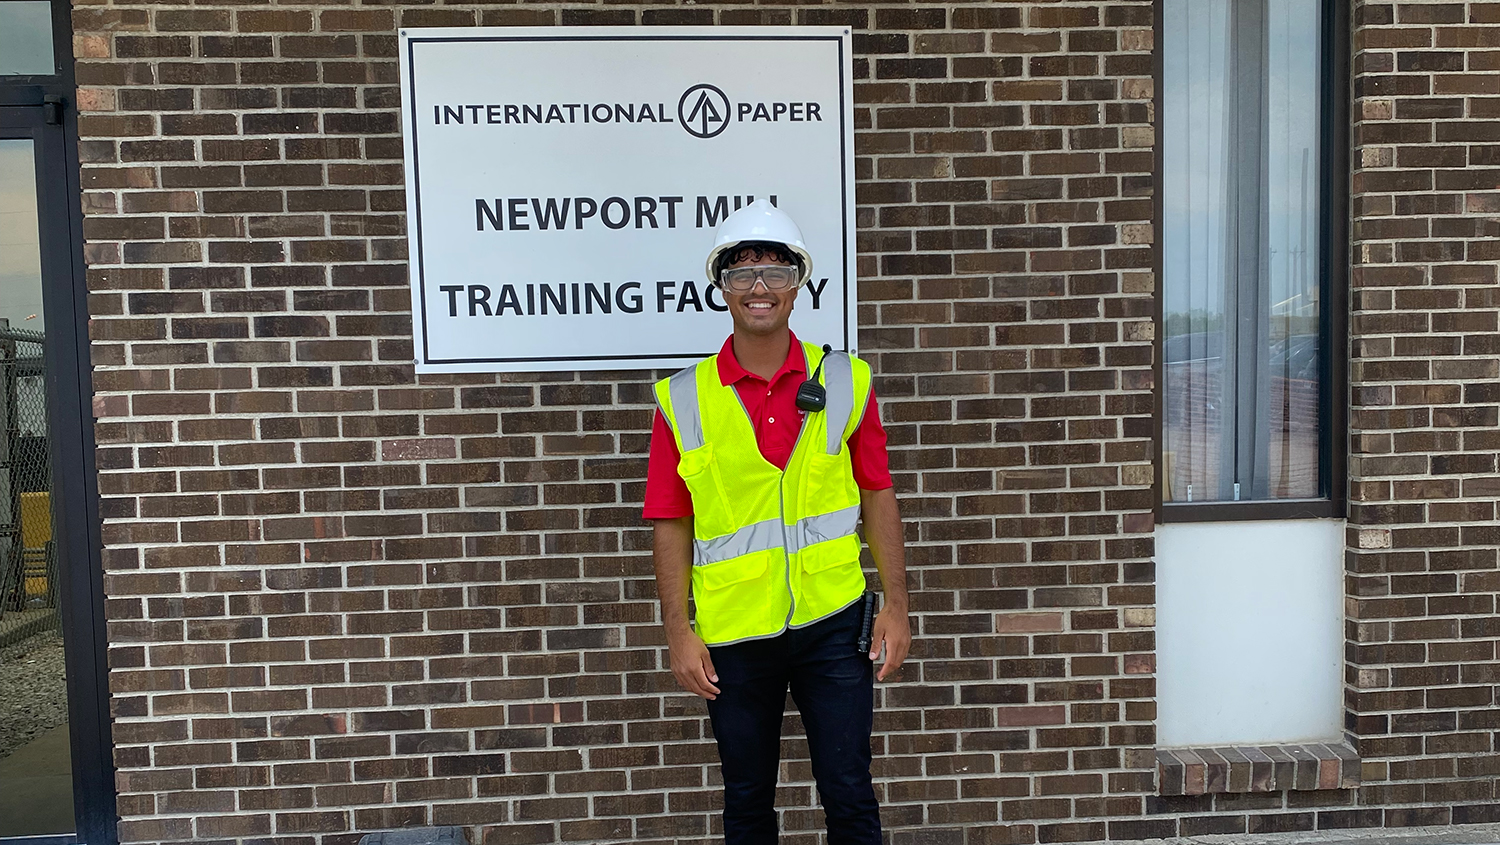 Kelvin Borges stands in front of International Paper sign